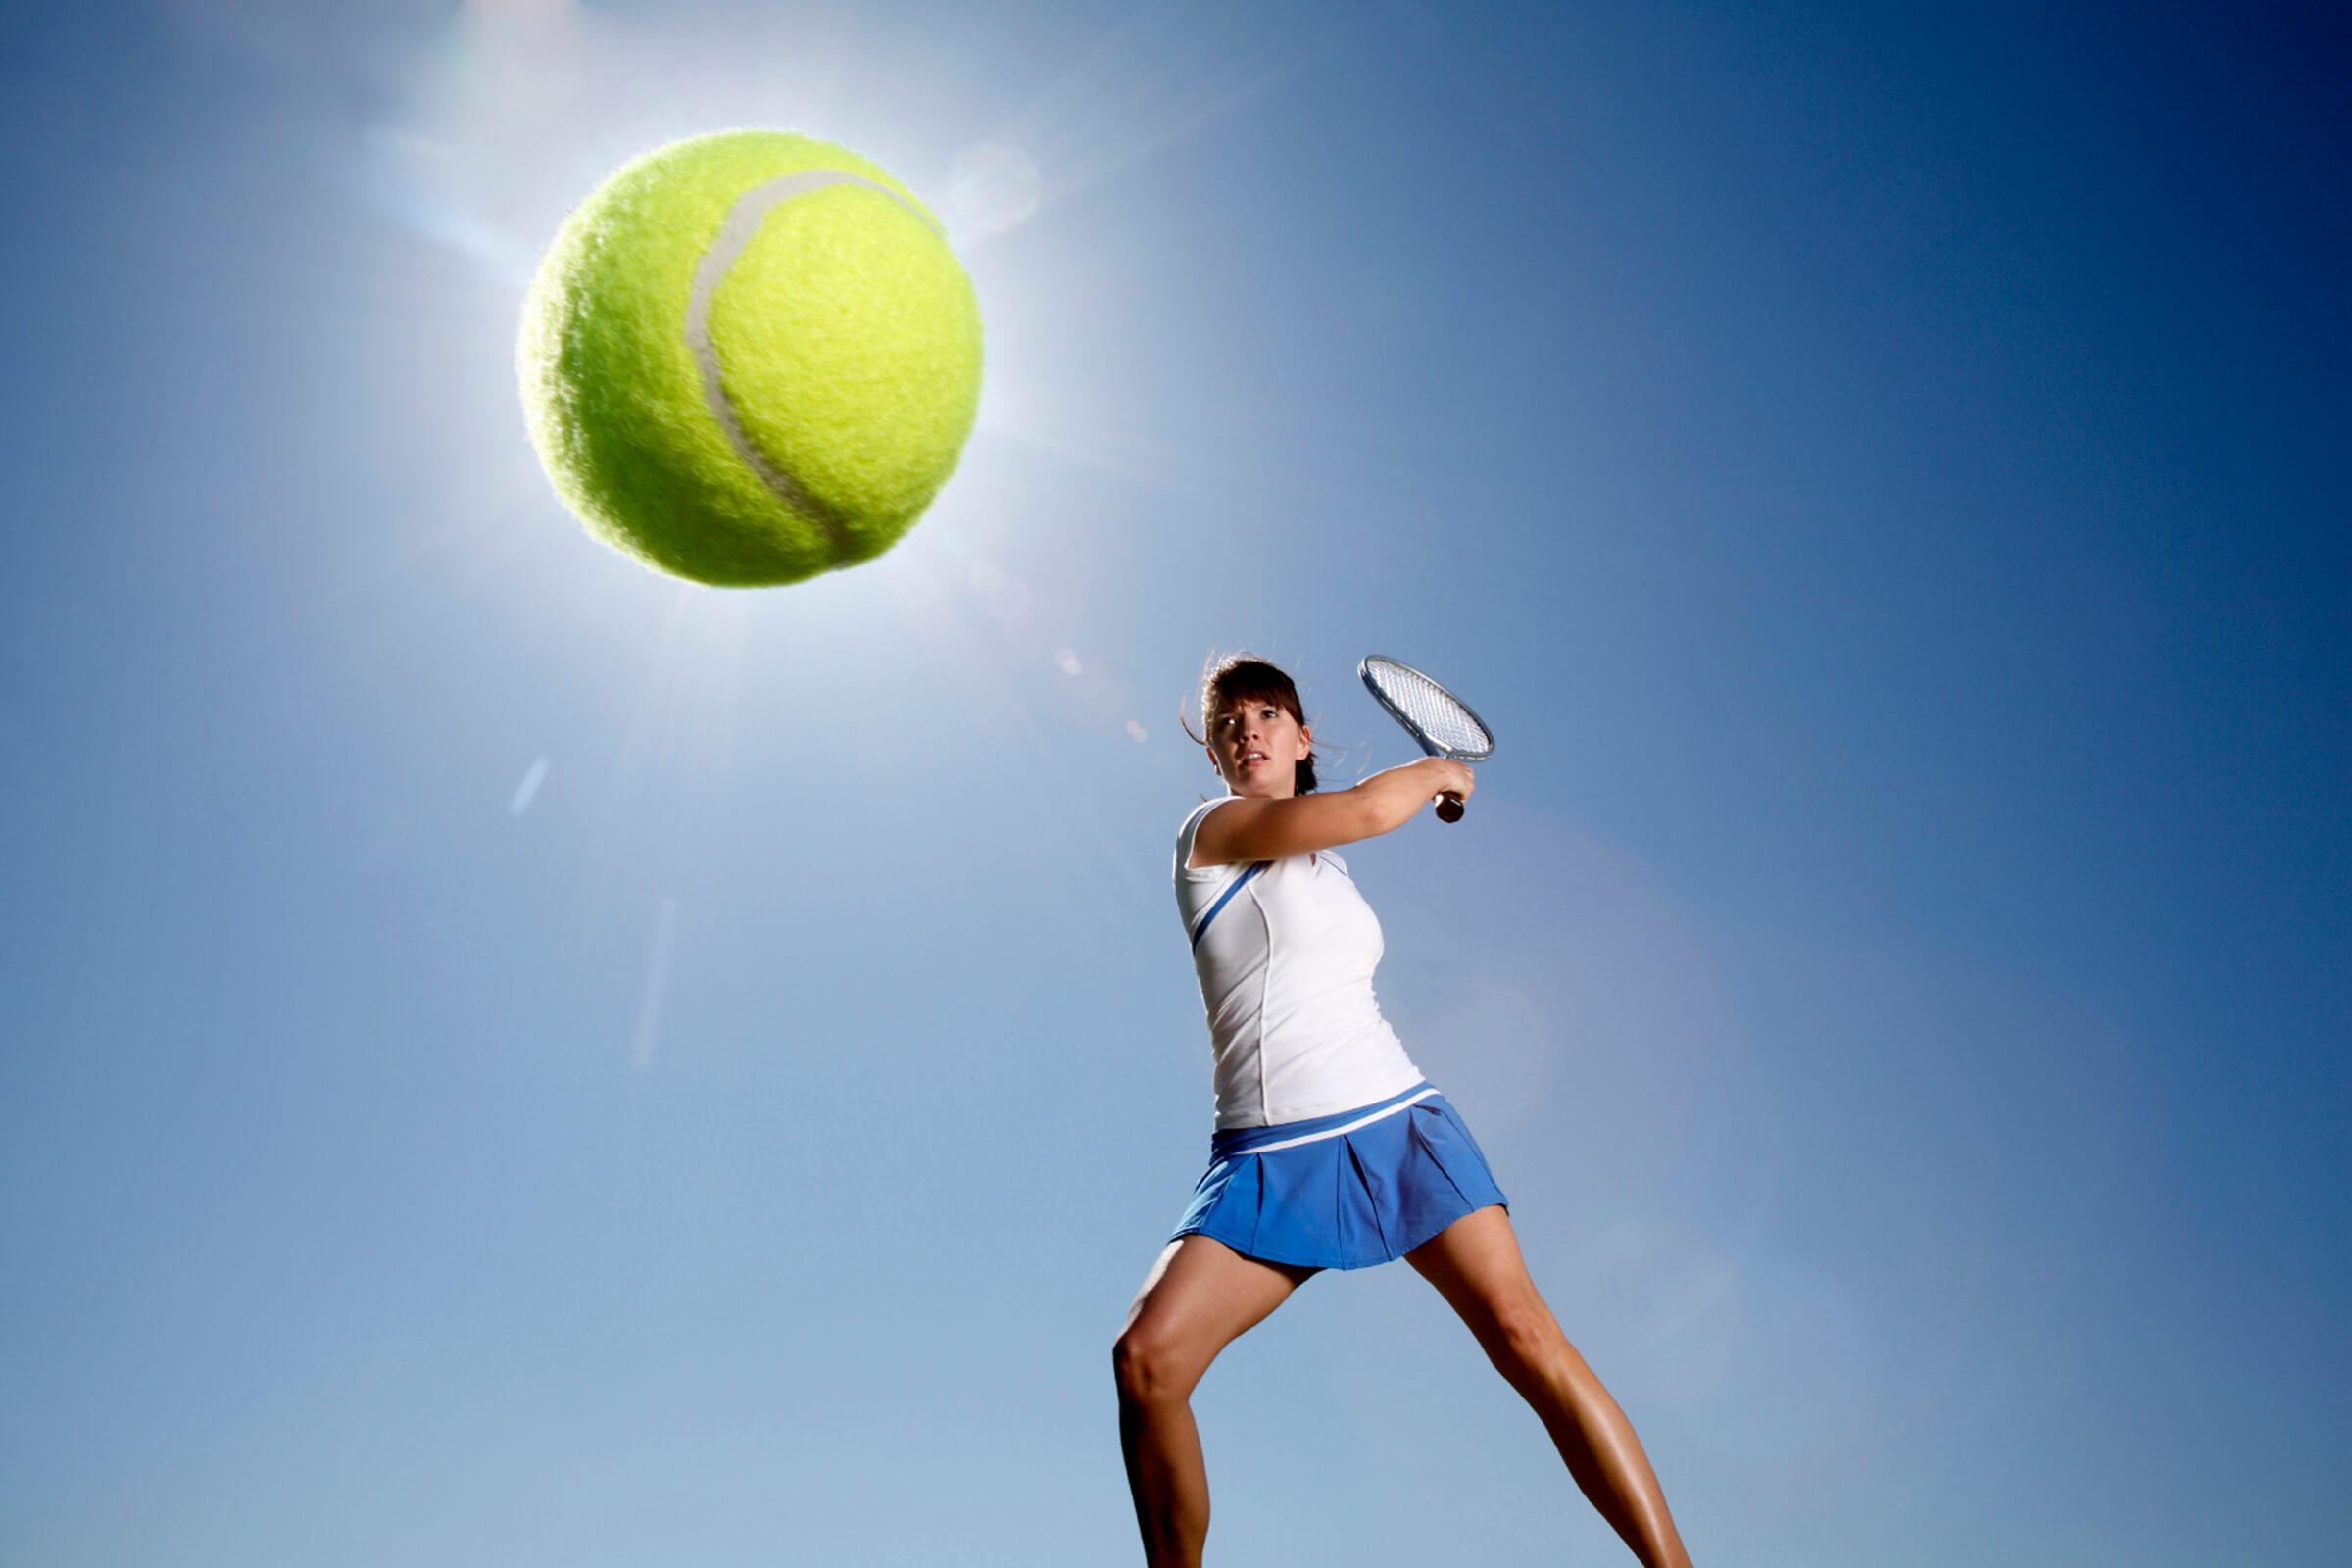 a woman hitting a ball with a racket